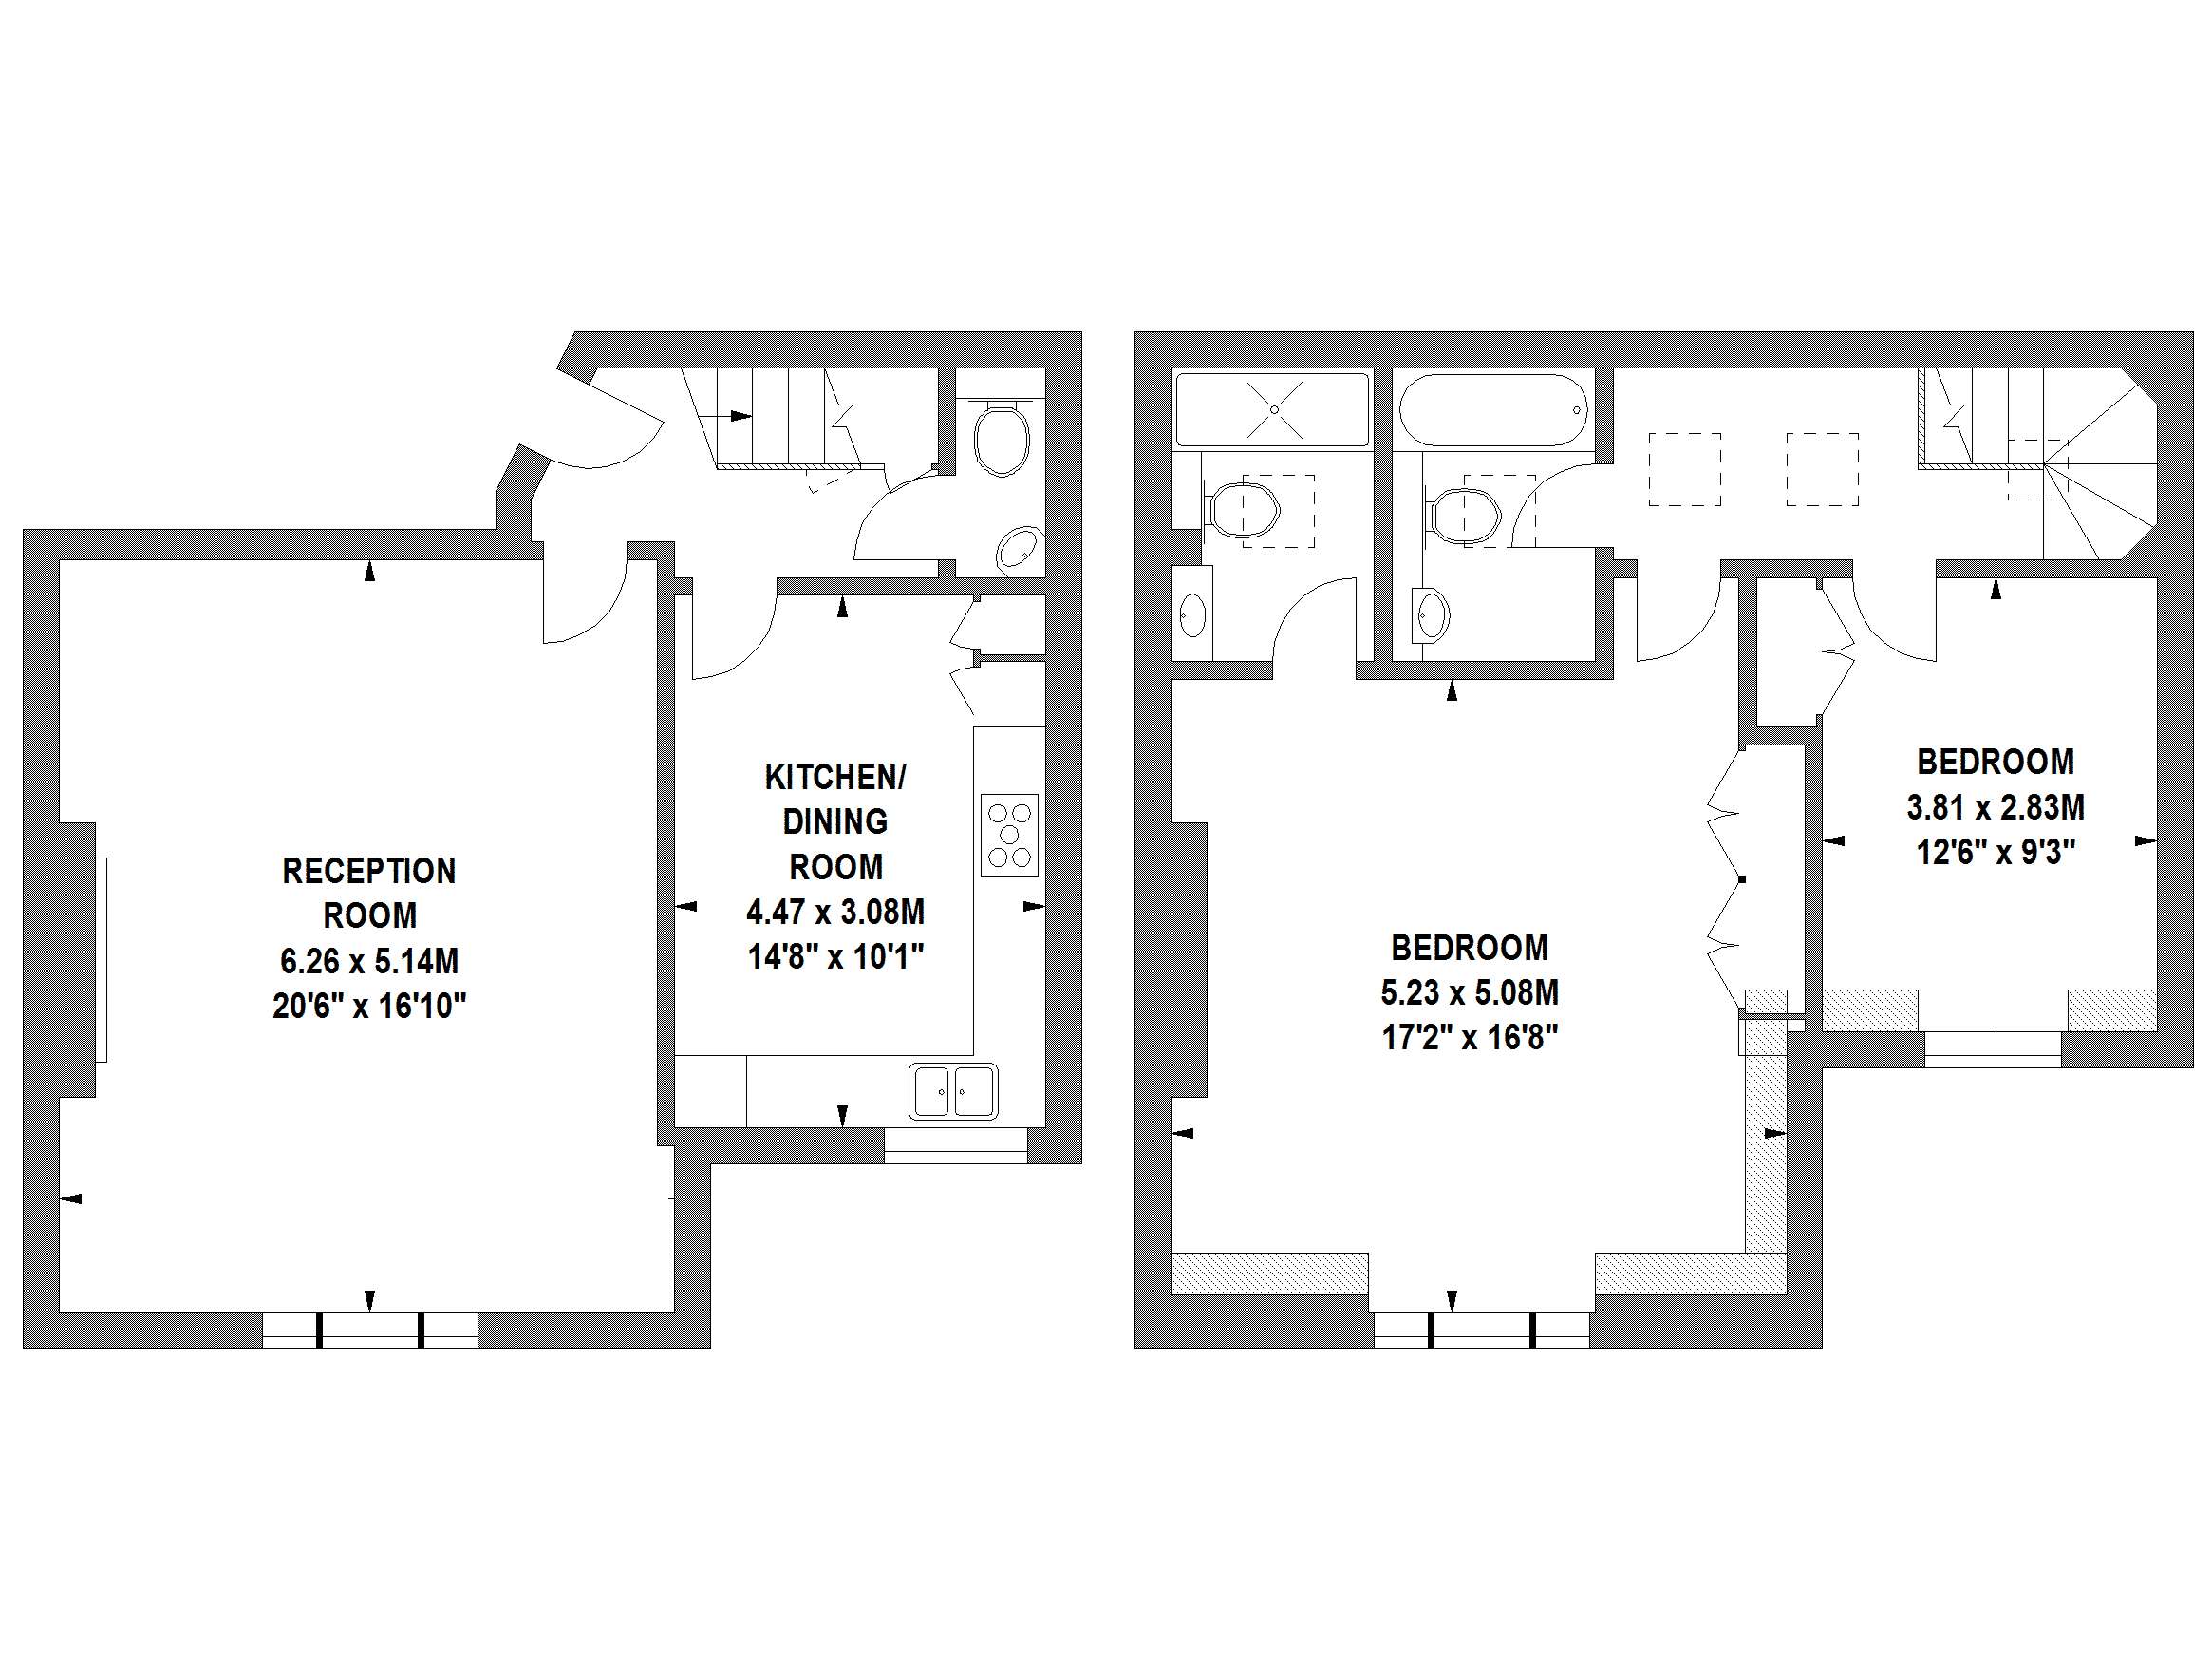 Floor Plans by Harpr Surveyors - This is an example of our shaded walls floor plans